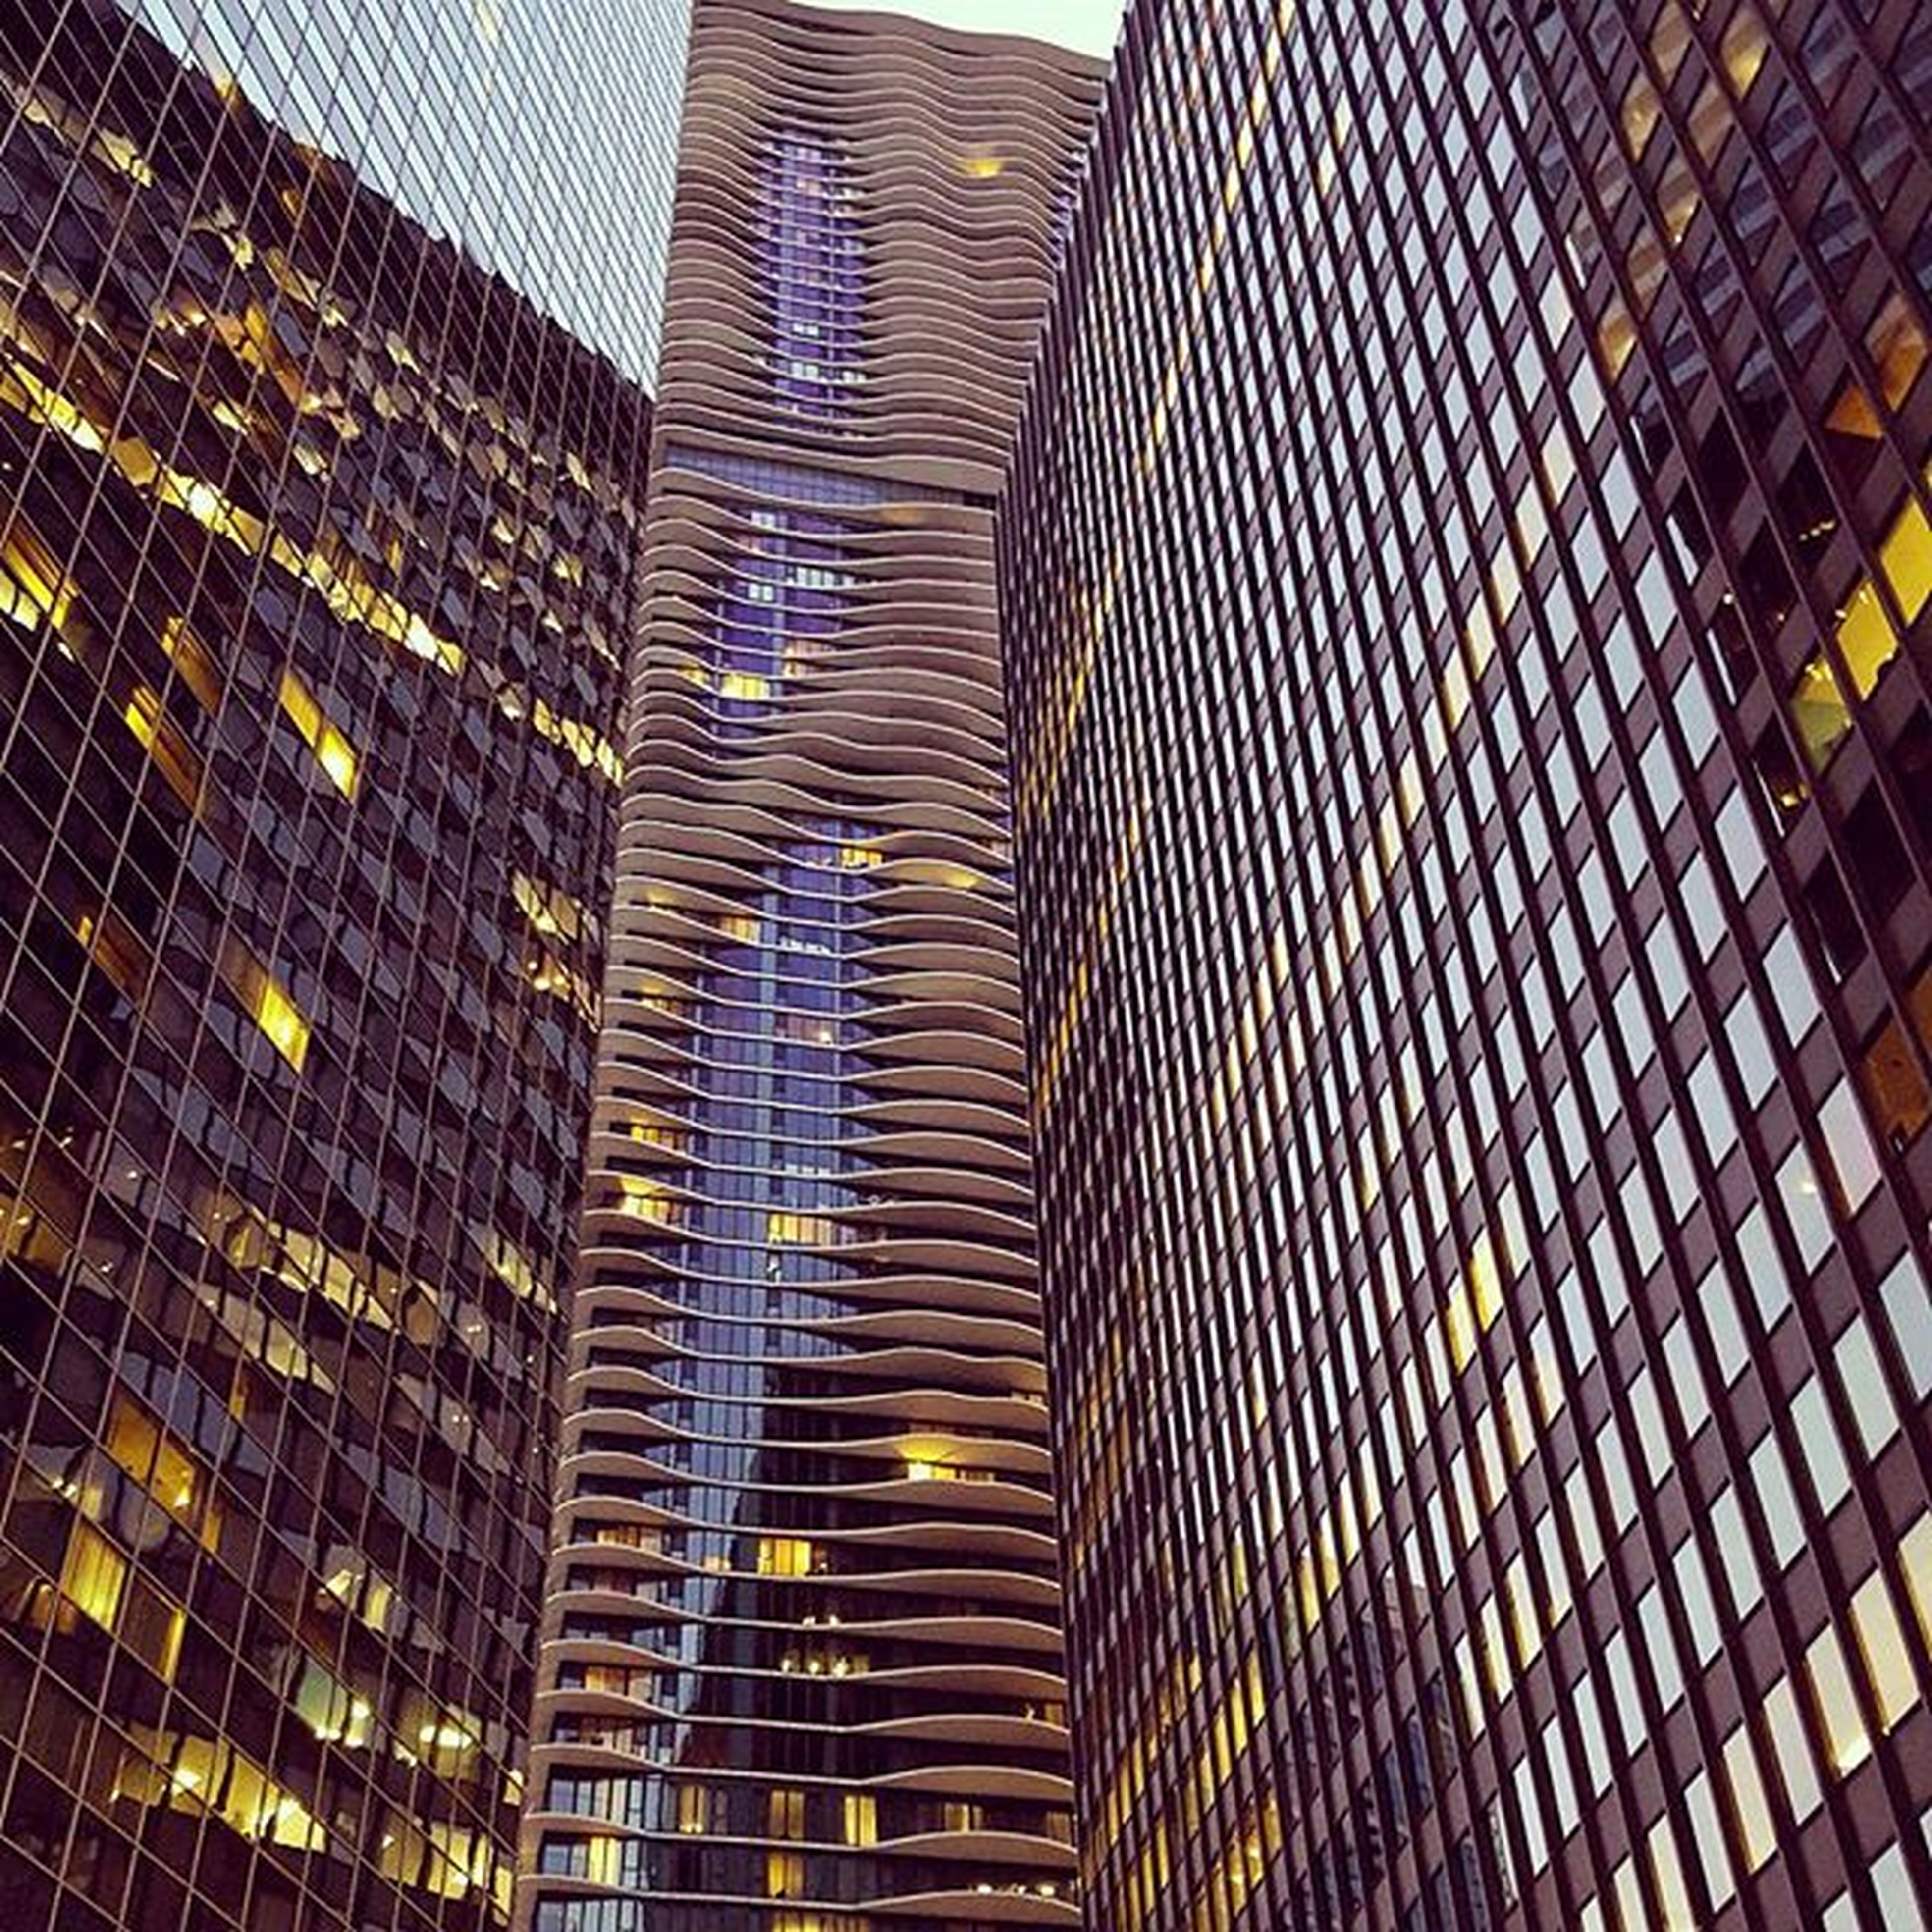 architecture, building exterior, built structure, city, skyscraper, modern, low angle view, office building, tall - high, tower, building, glass - material, window, reflection, pattern, no people, architectural feature, capital cities, city life, day